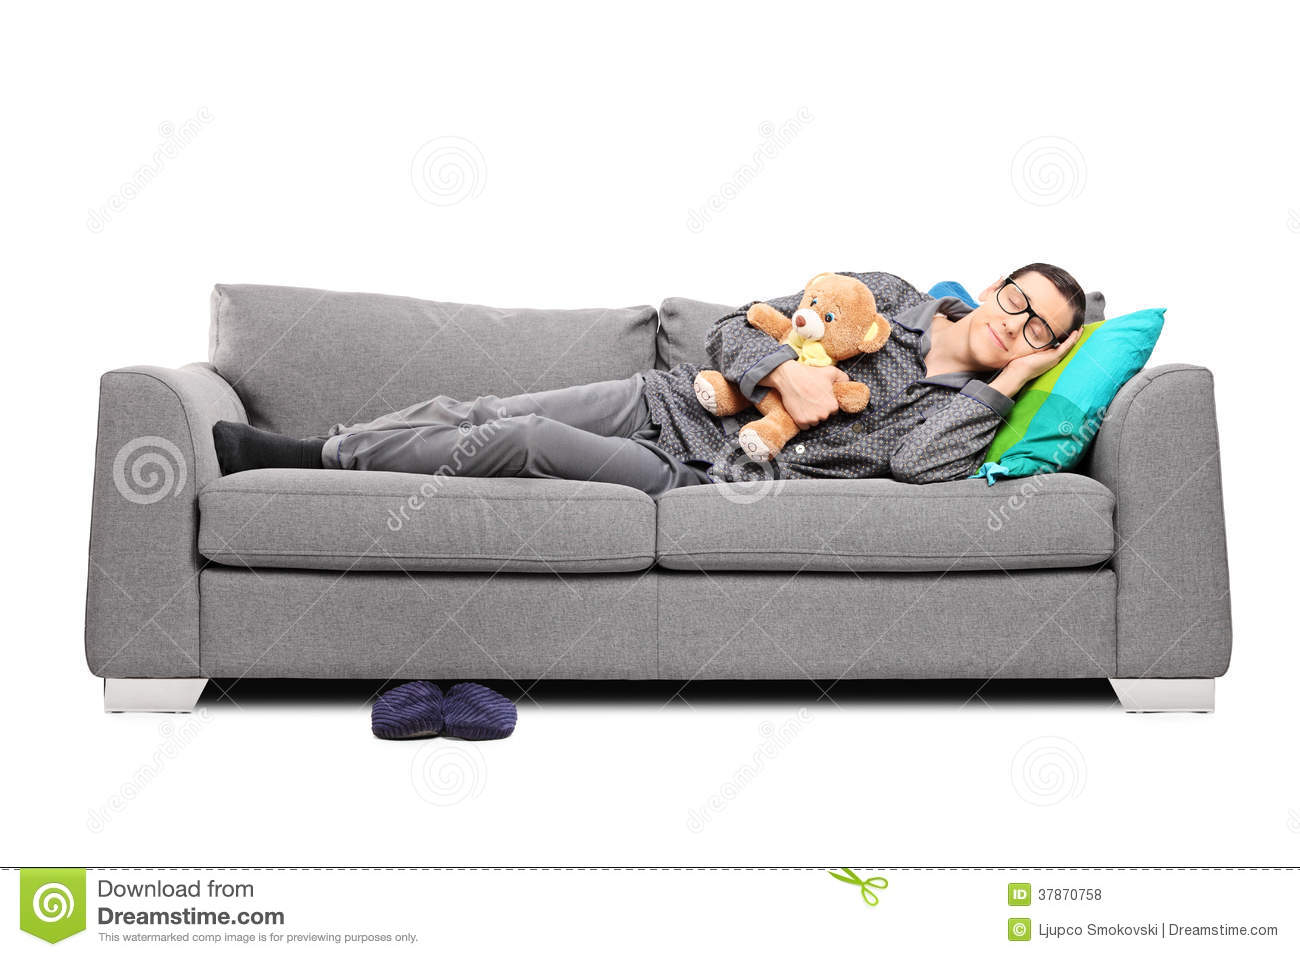 Young Man In Pajamas Sleeping On Couch With Teddy Bear  : young man pajamas sleeping couch teddy bear 37870758 from www.dreamstime.com size 1300 x 957 jpeg 107kB